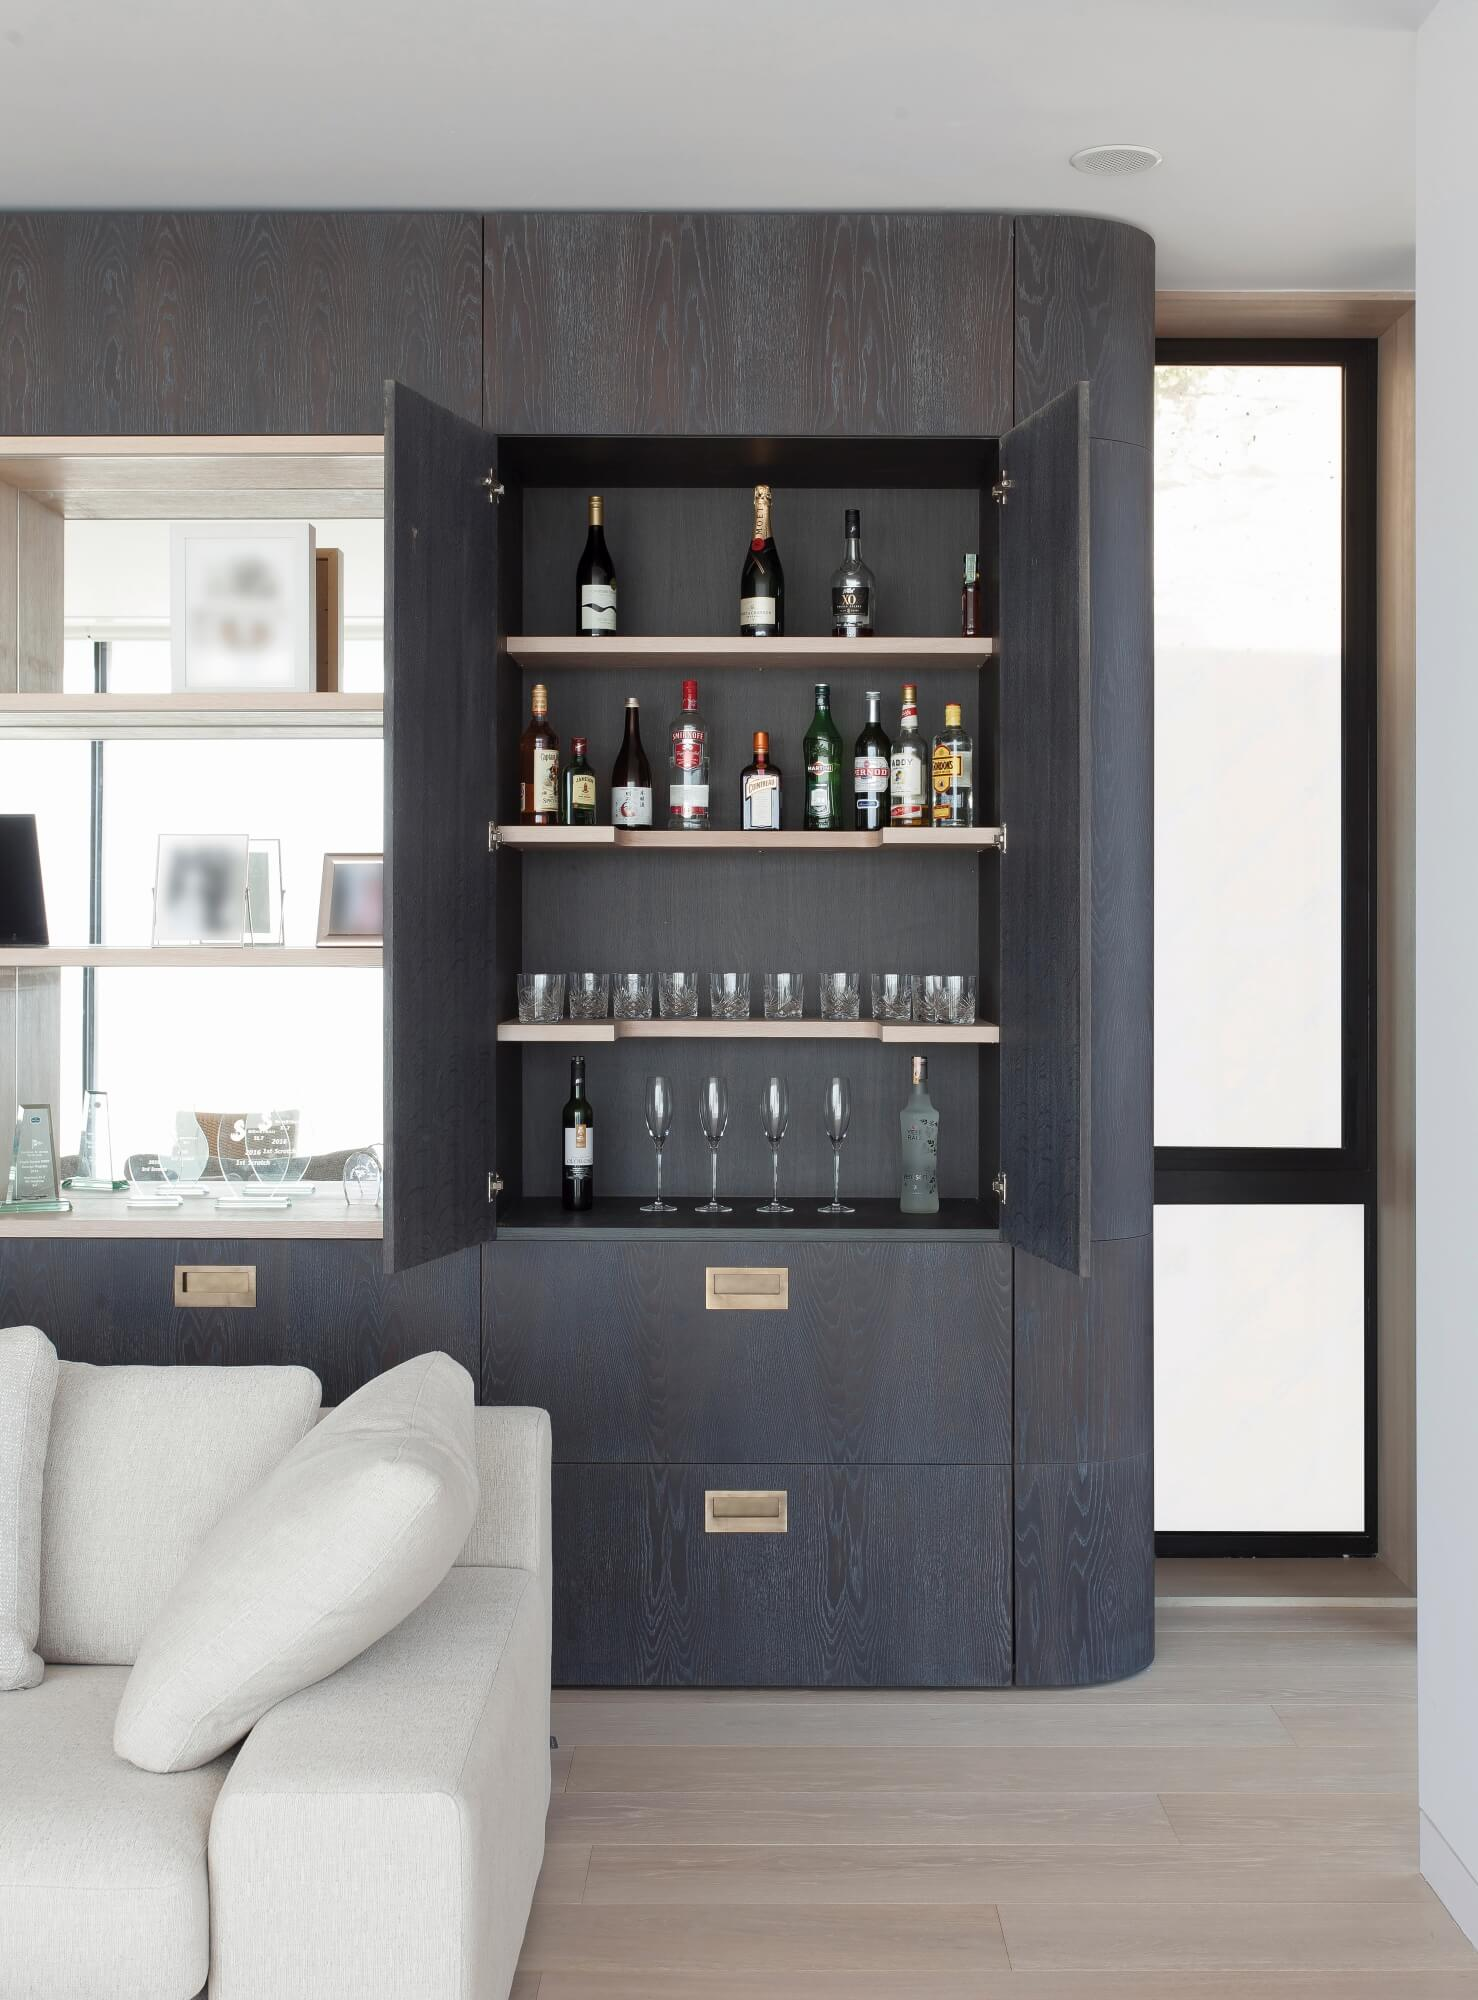 Wall cabinets with build in liquor cabinet.